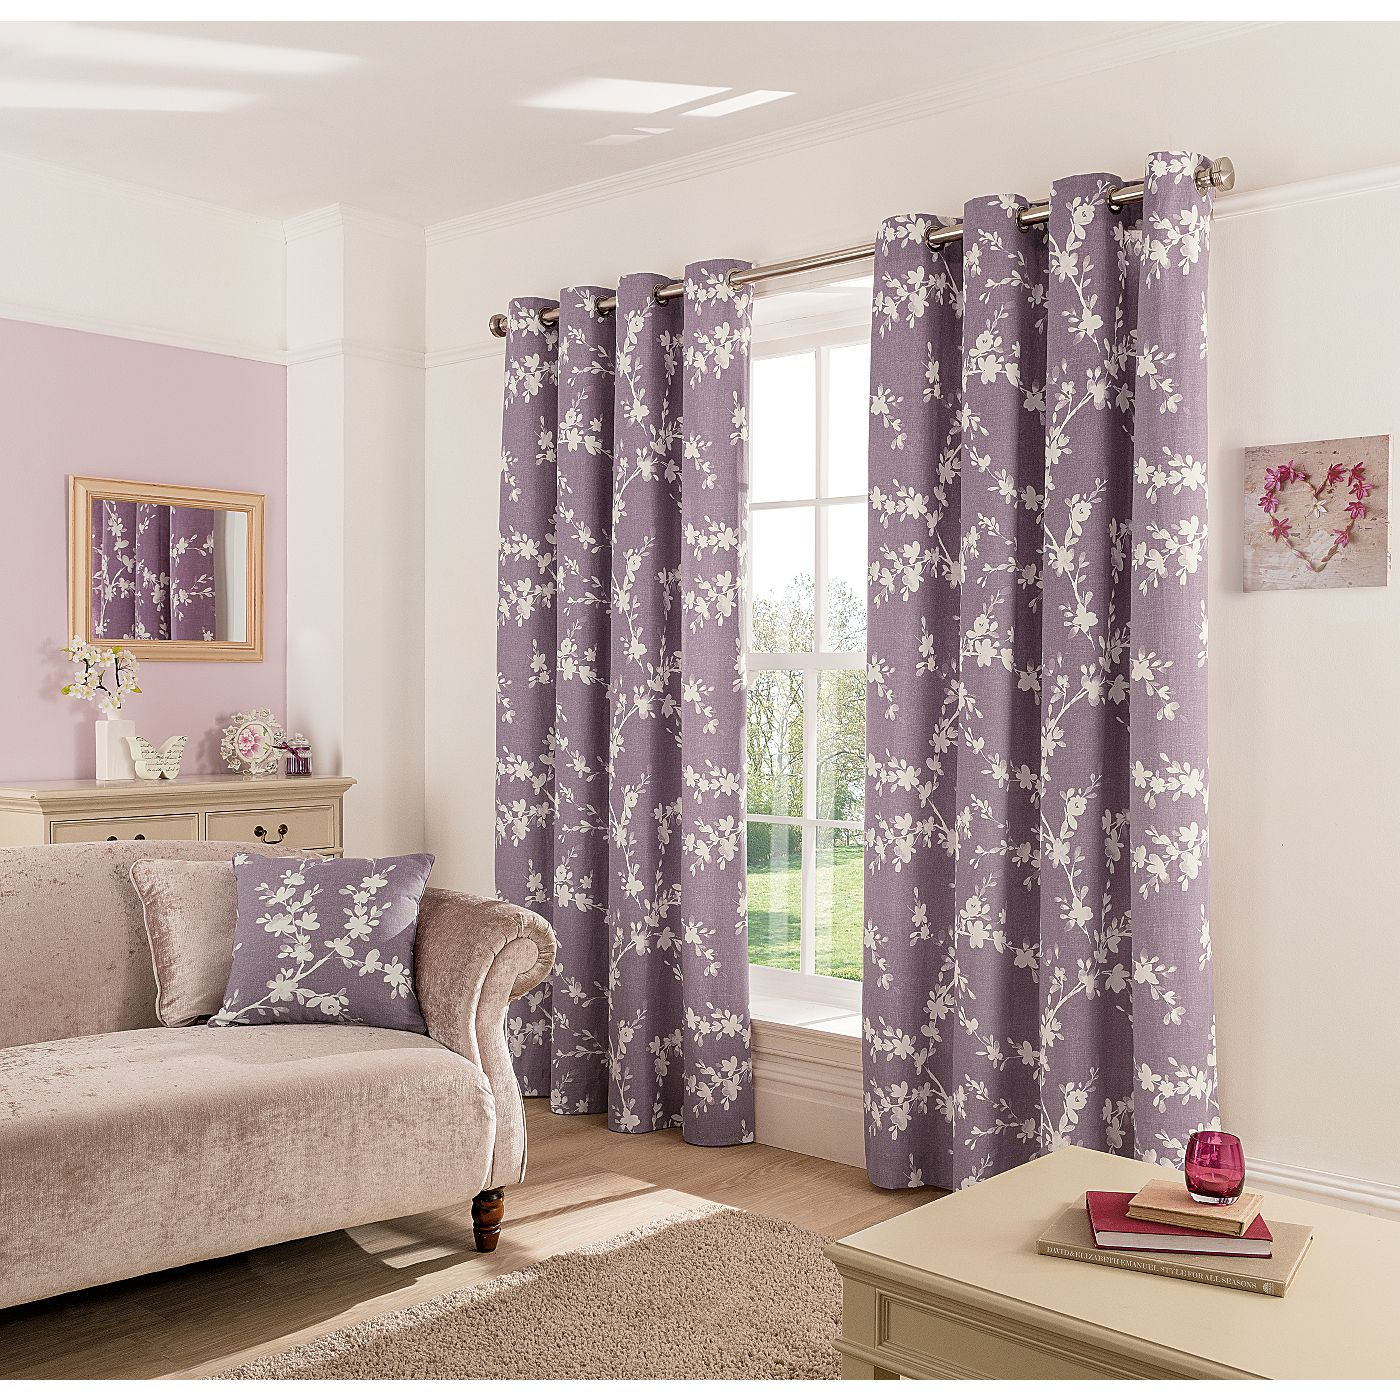 George Home Thistle Eden Floral Eyelet Curtains | Curtains | ASDA ...